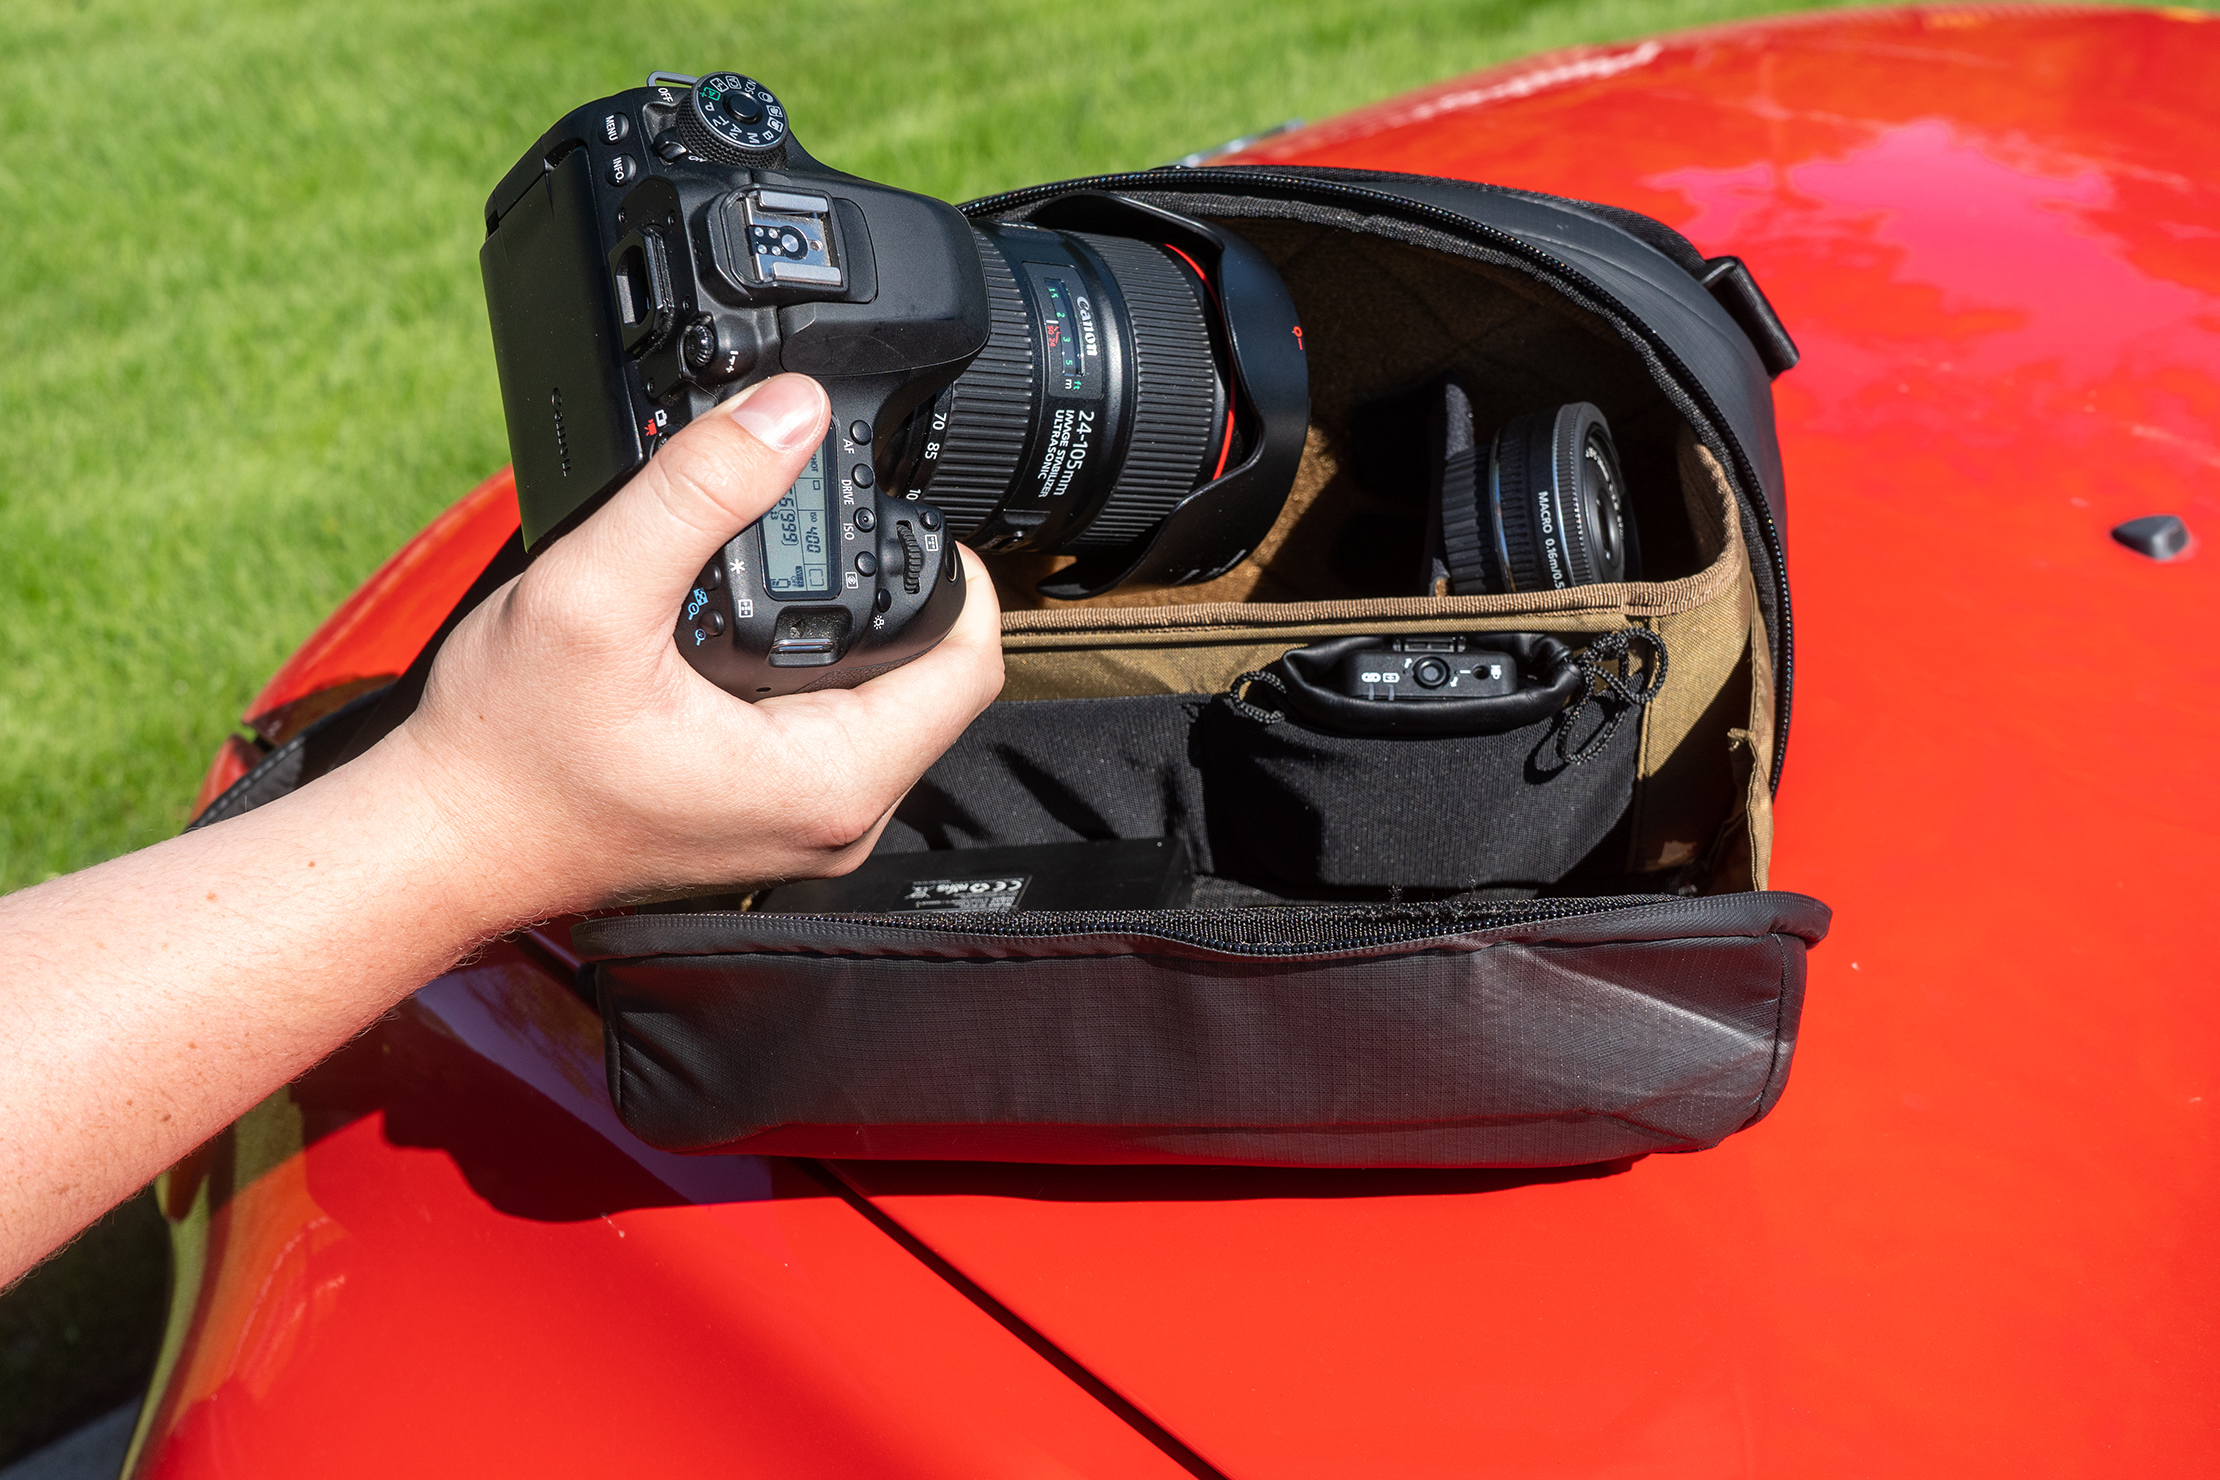 NOMATIC McKinnon Camera Sling 8L with Camera in Hand